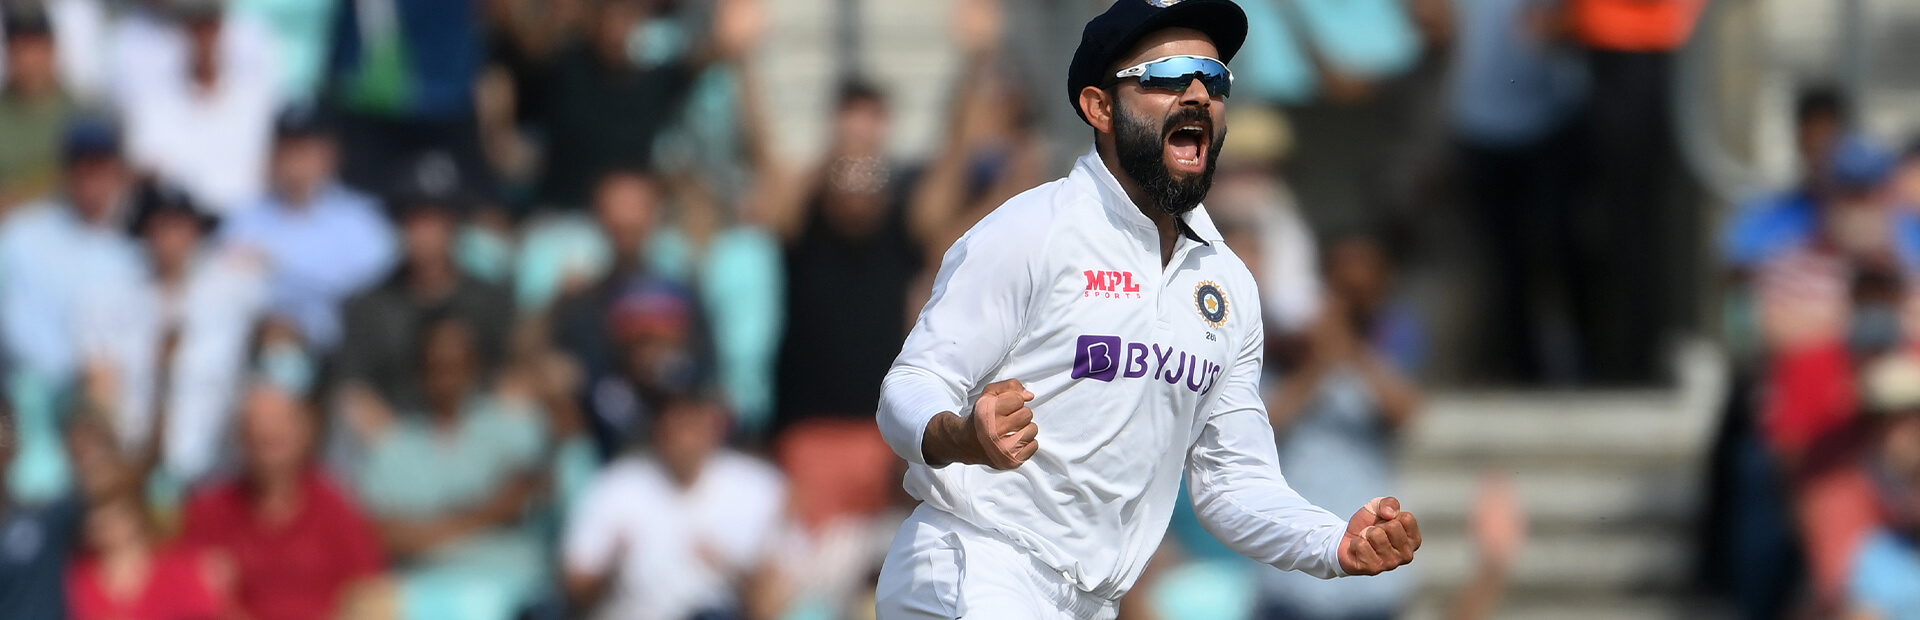 Edgbaston to host India Test and IT20 following change to 2022 schedule